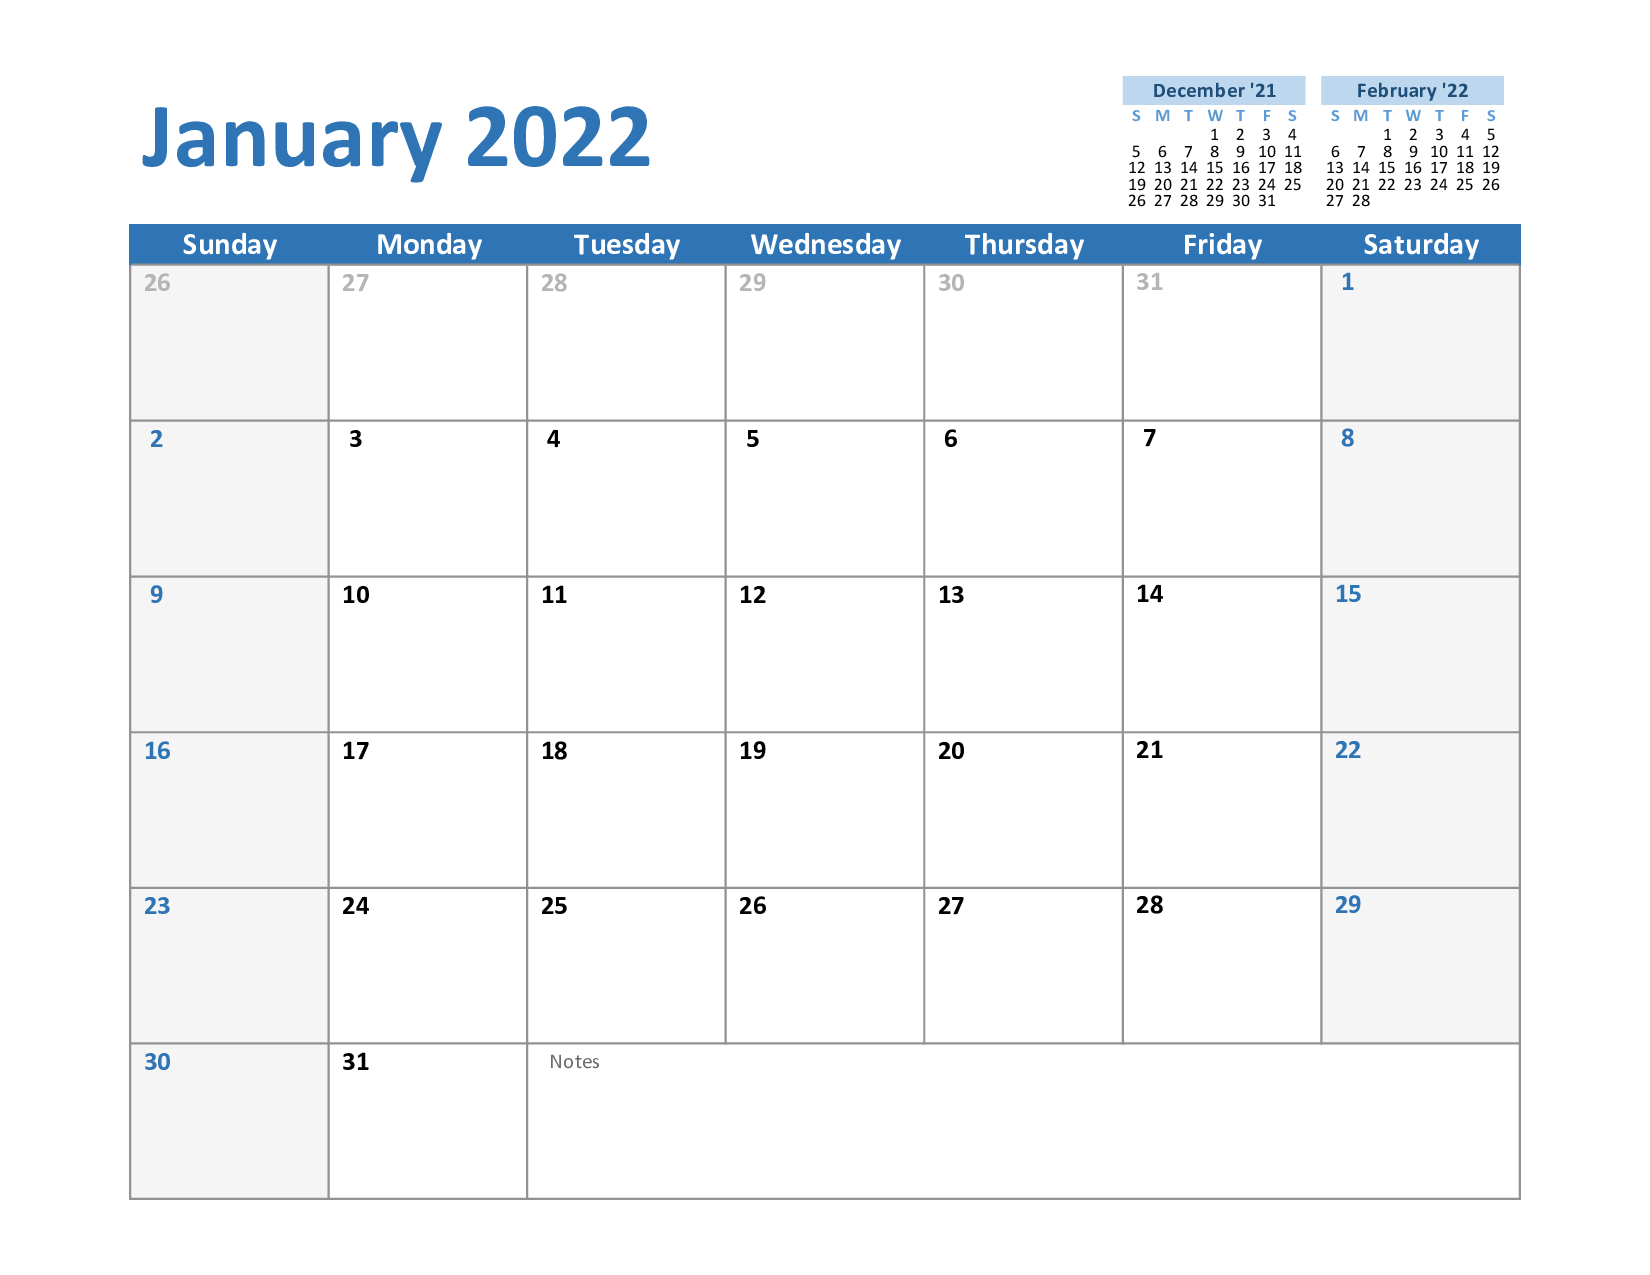 Free January 2022 Printable Calendar Template In Pdf, Excel, Word pertaining to Blanket Calender Printables For December